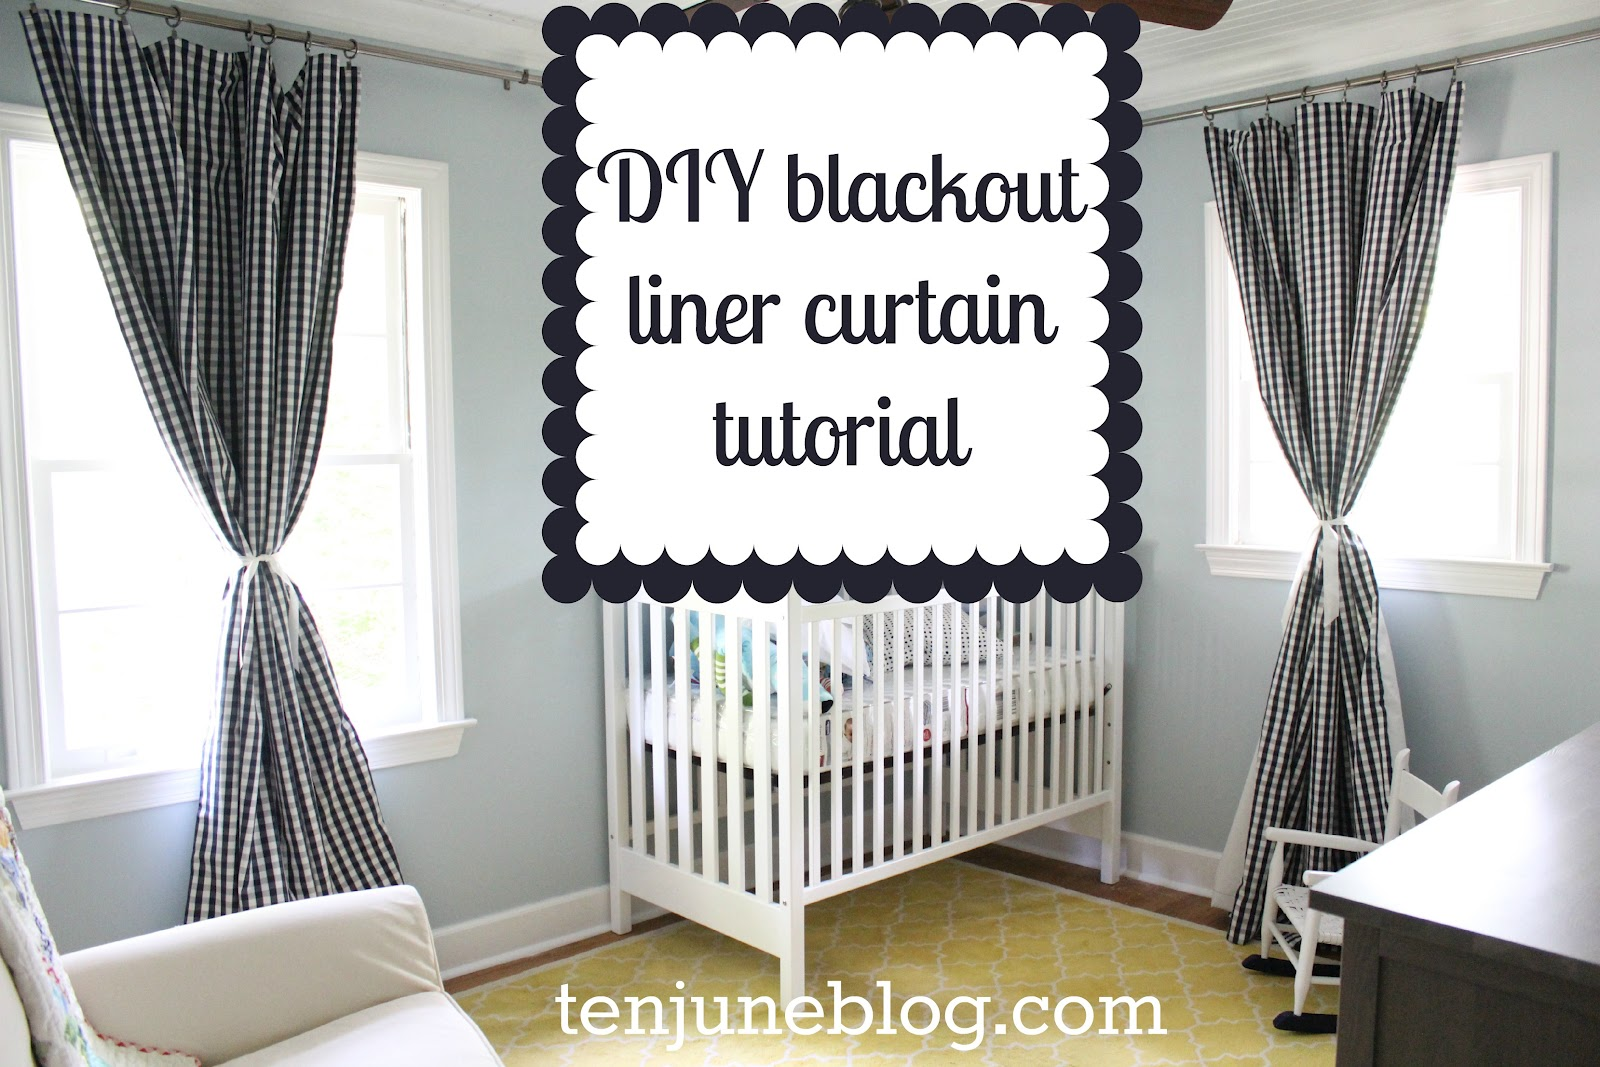 Black White Pattern Of Blackout Curtains Nursery With Crib